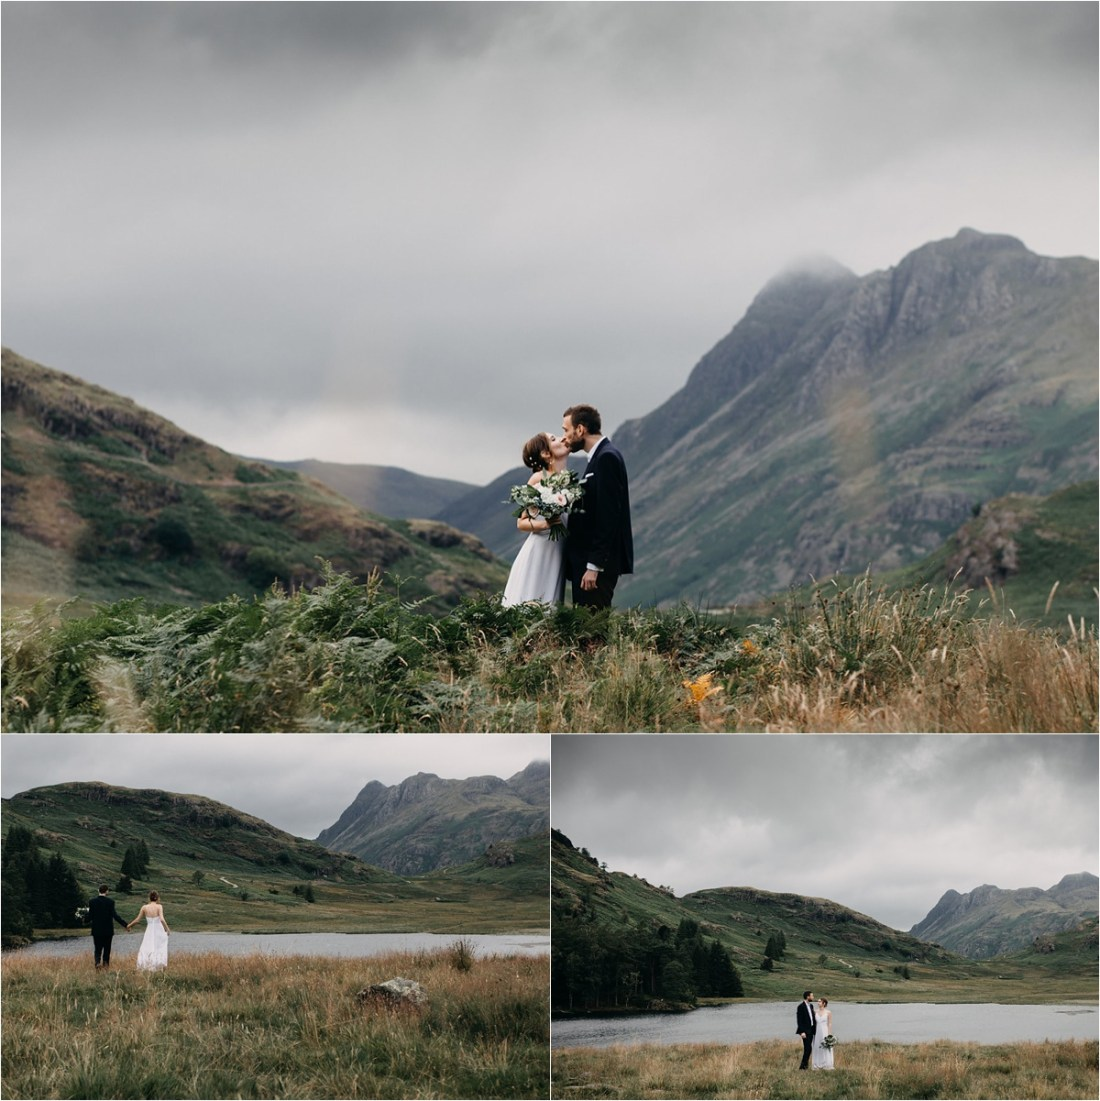 Newly wed couple exploring Blea Tarn in the Lake District in England on their wedding day. Photos by Unfurl Photography